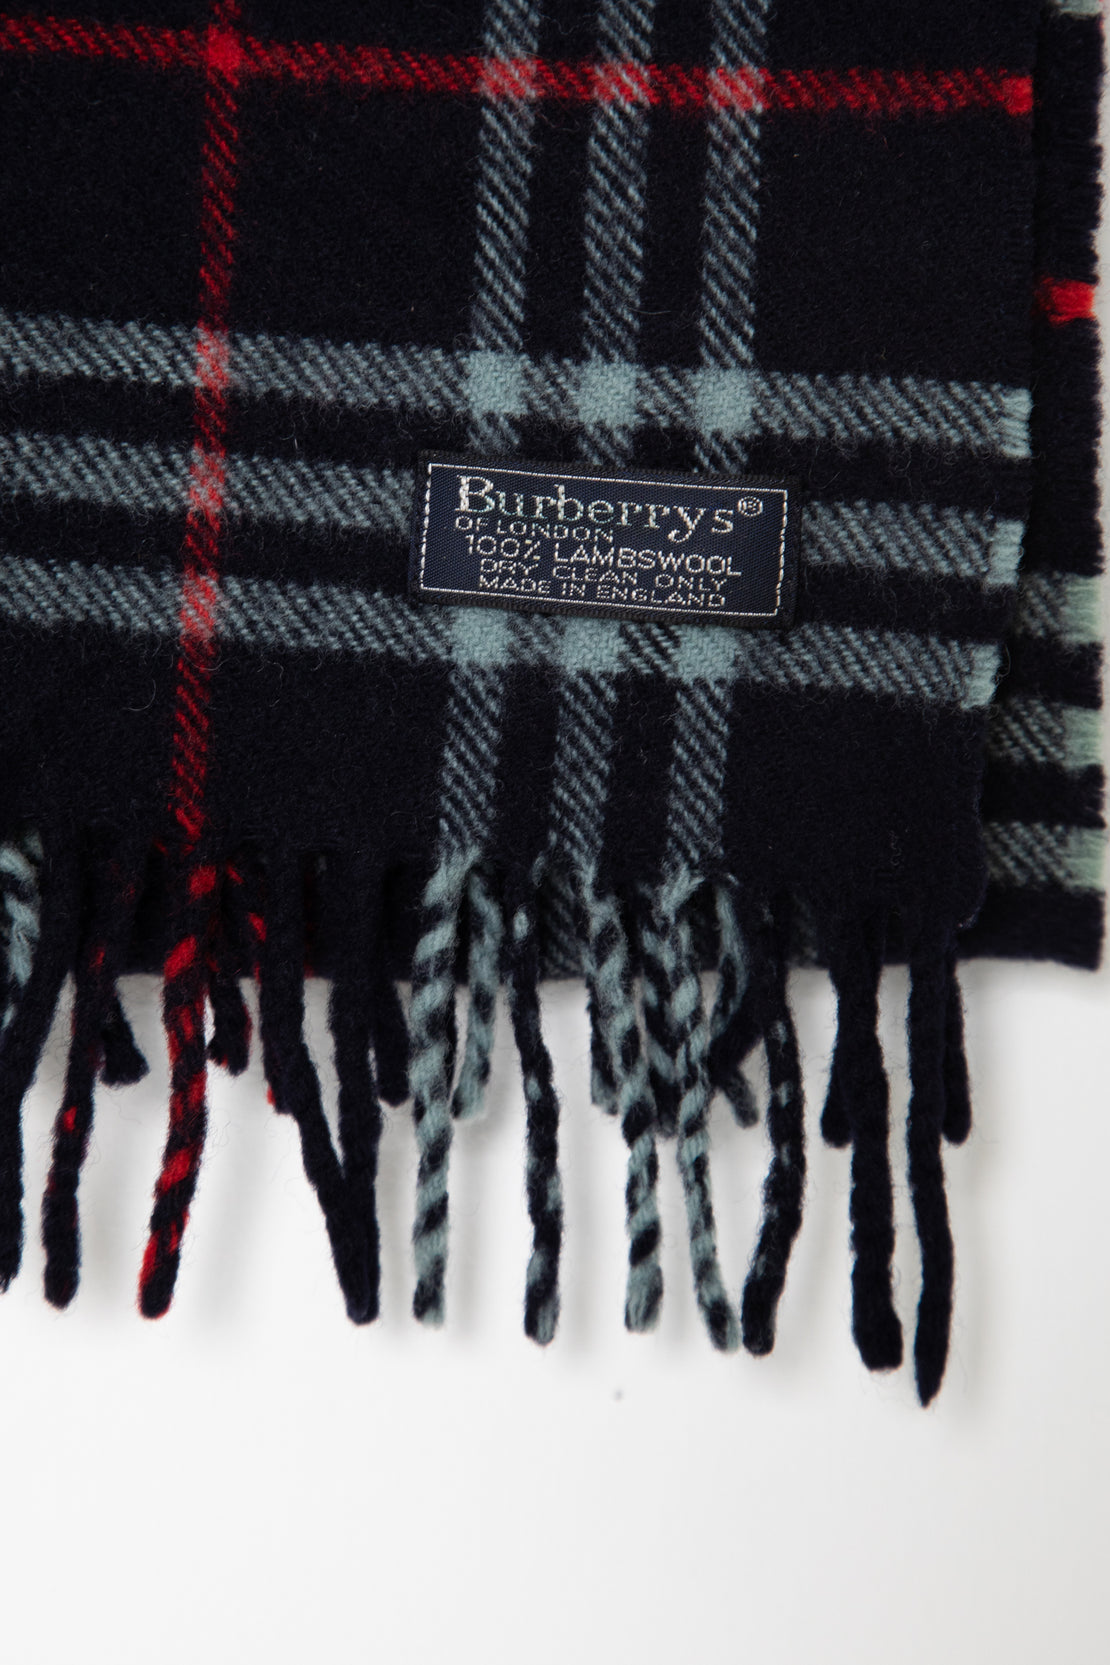 Burberry Scarf Lambswool